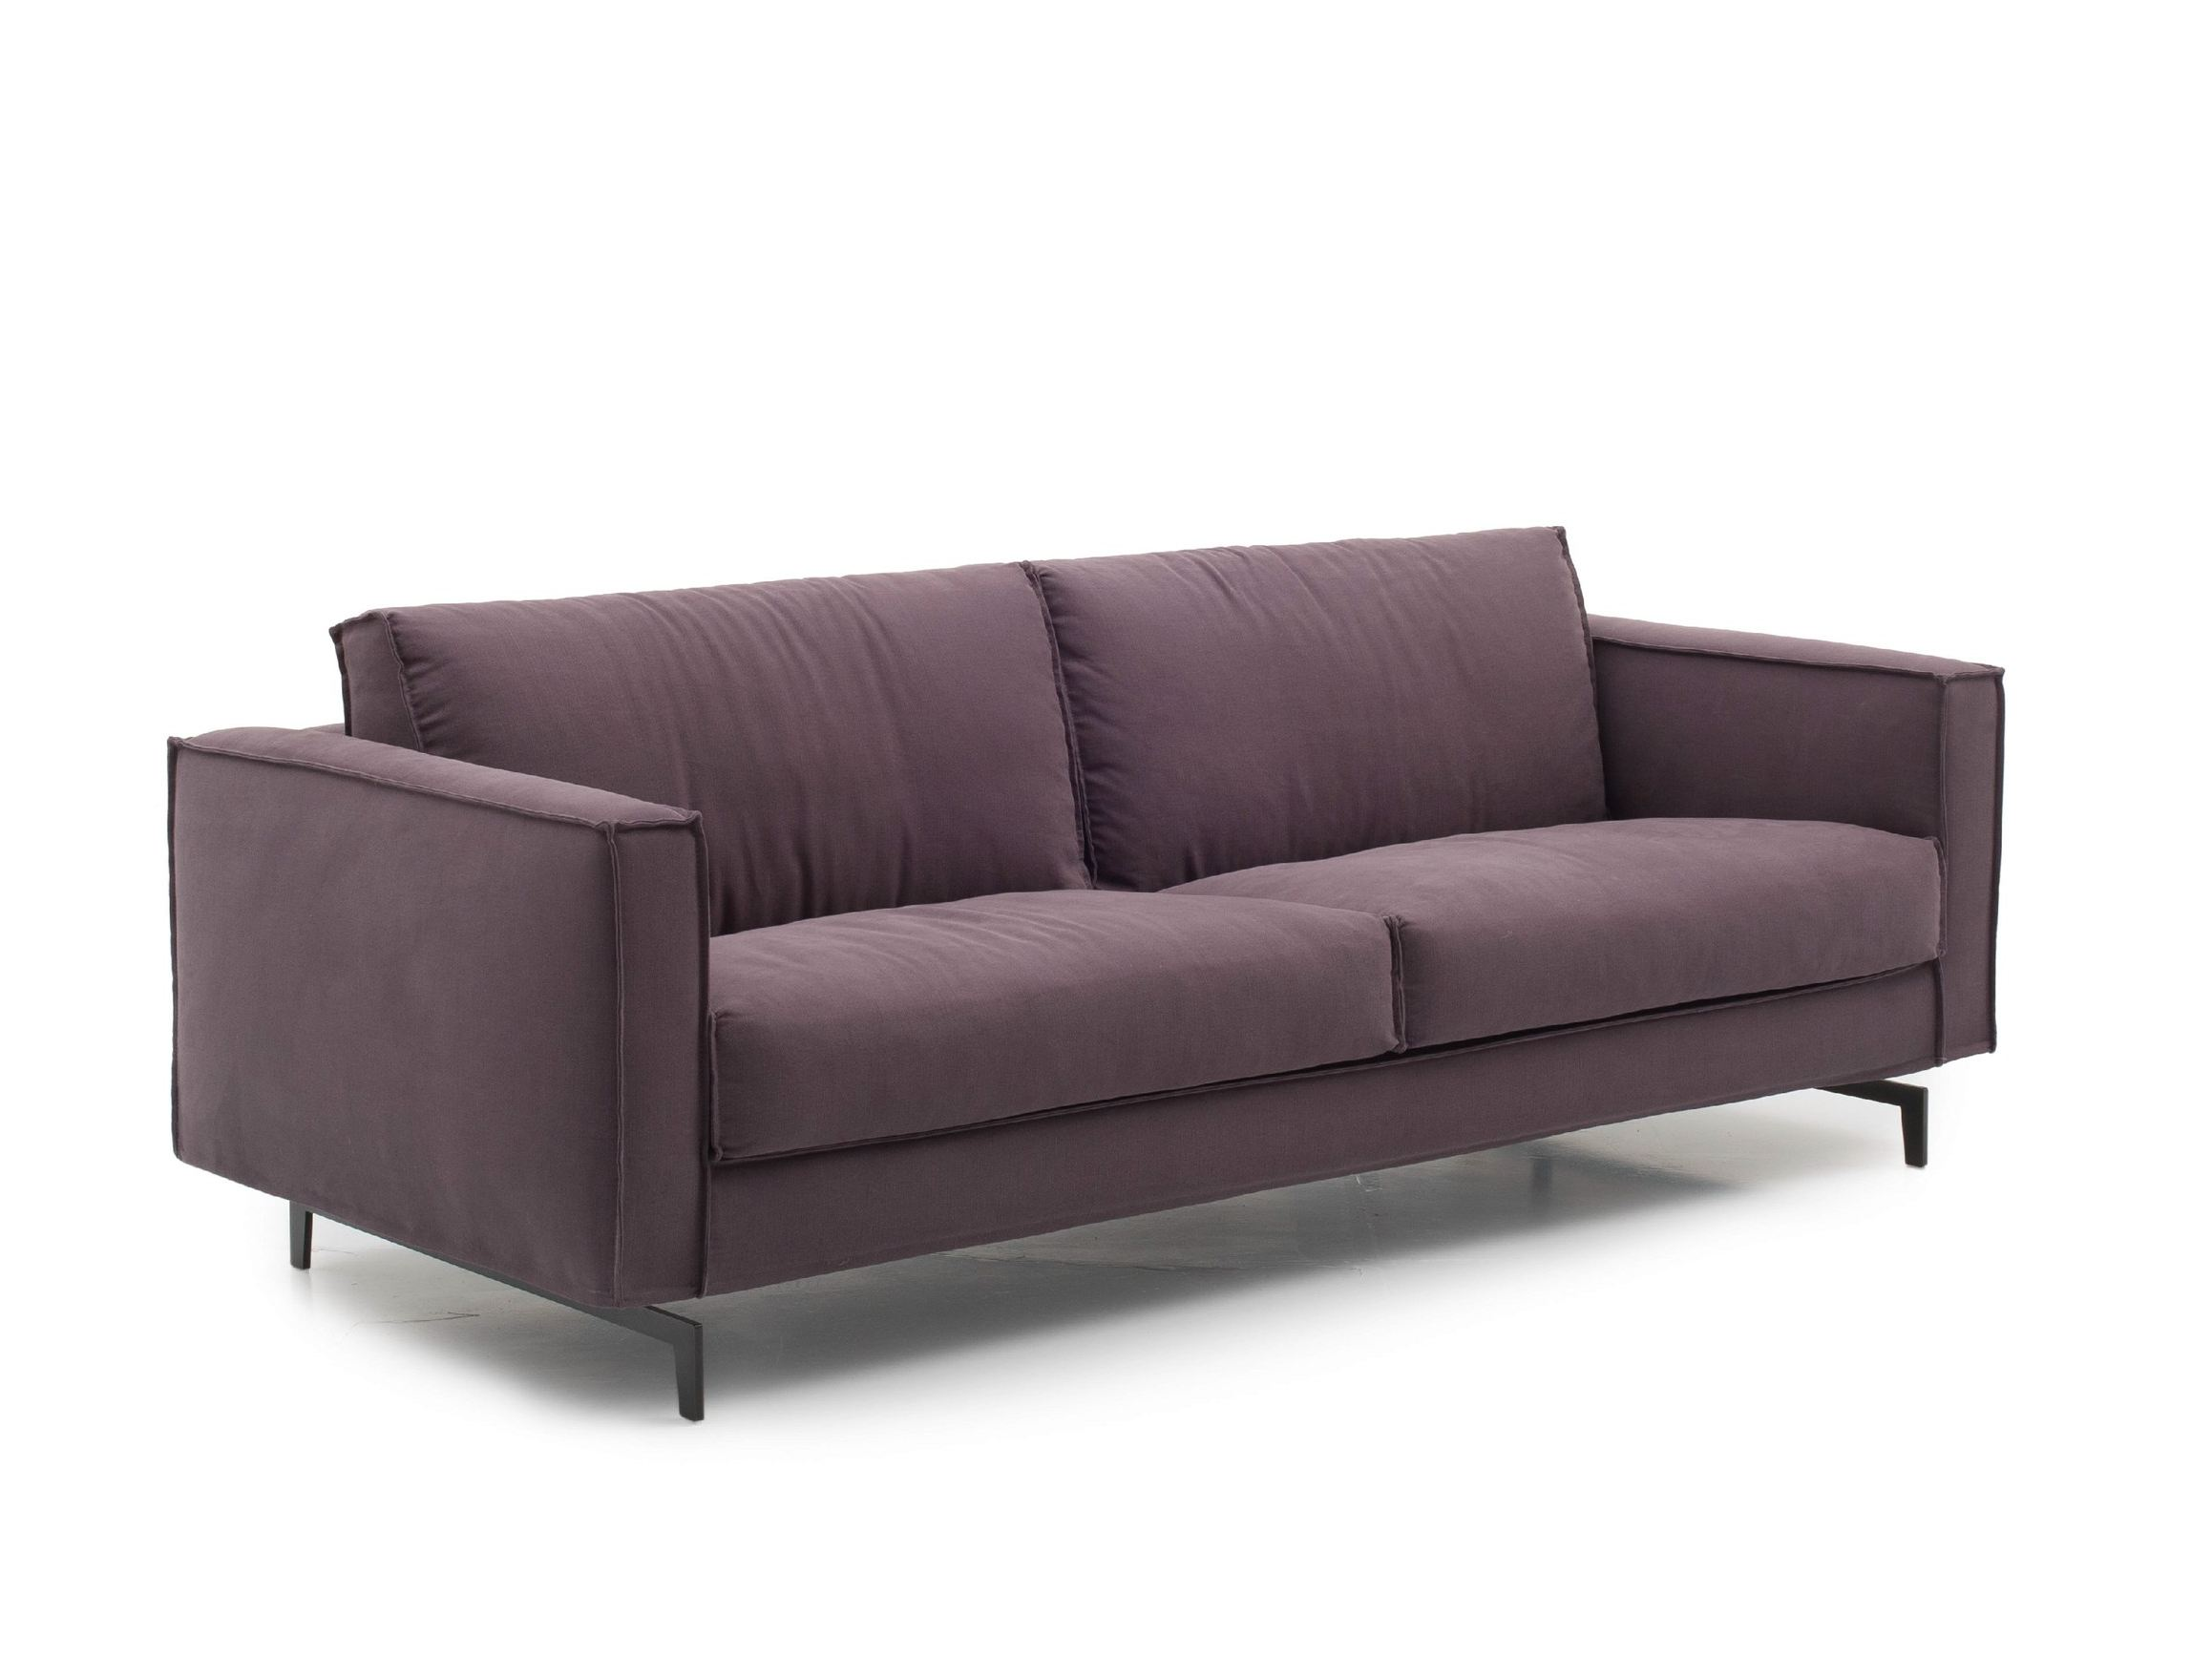 Sectional fabric sofa clifford by bodema design studio res for Design studio sectional sofa